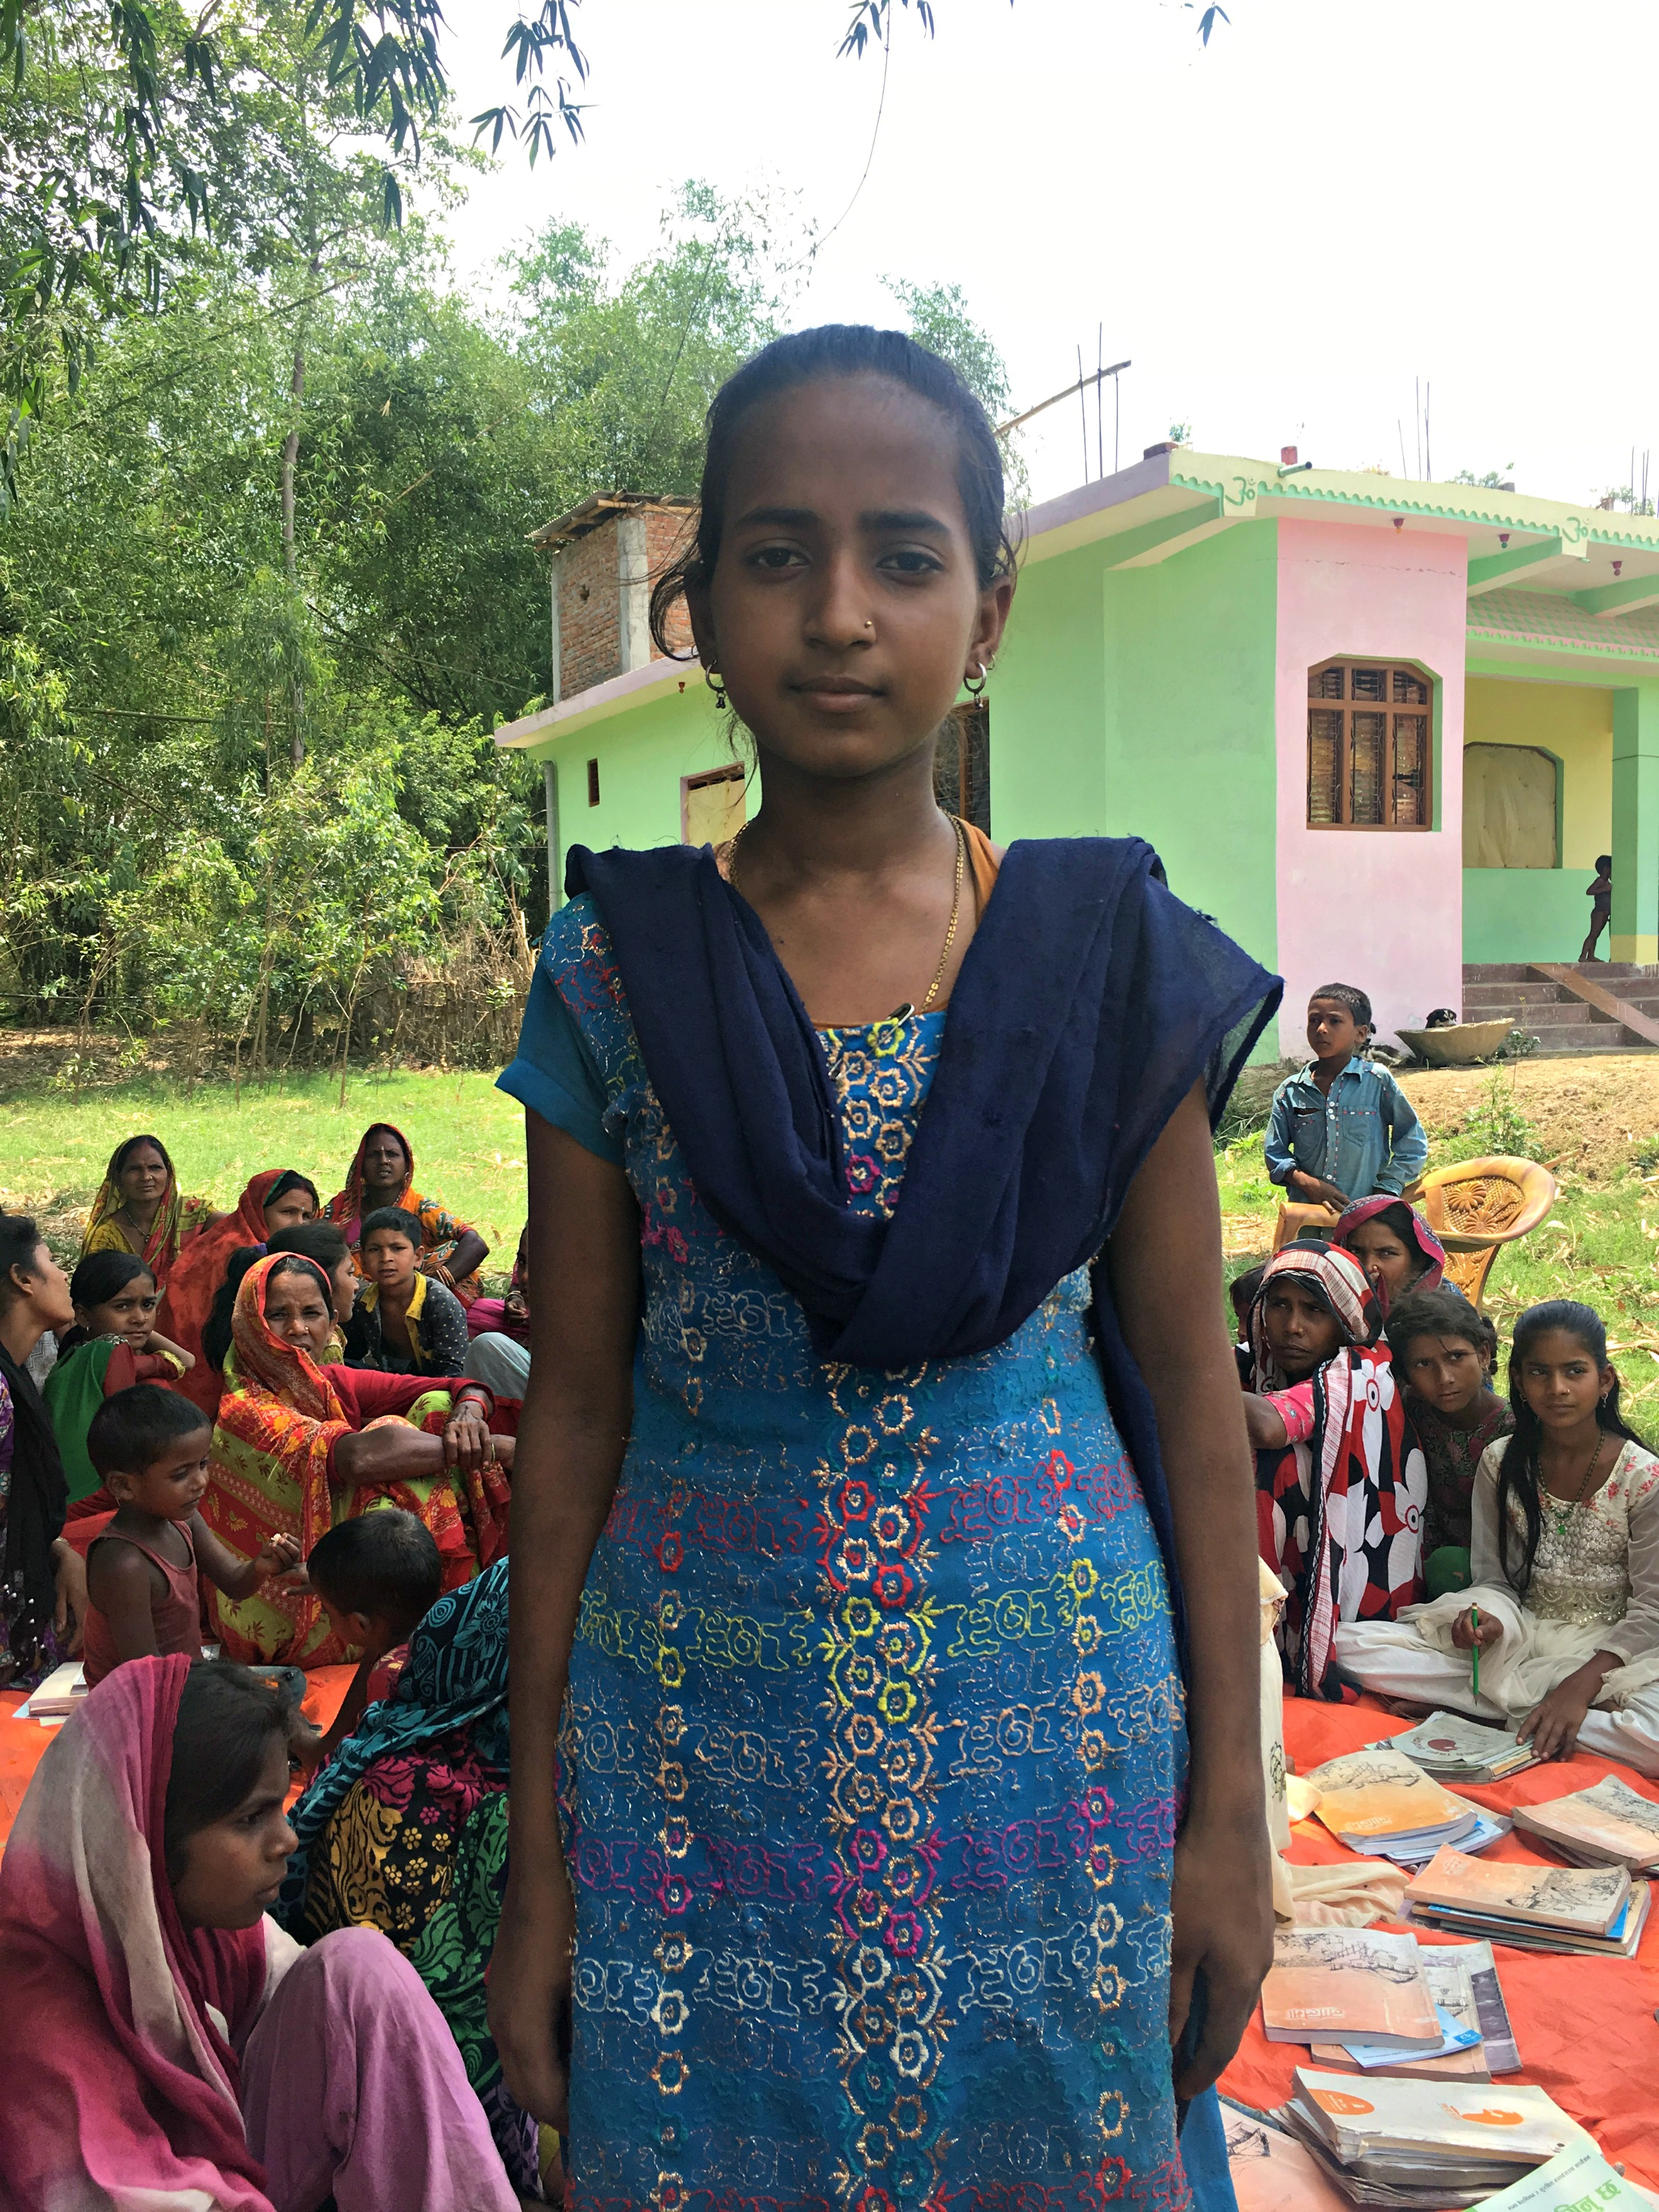 Kanti learned to read through World Education's girls' education program in Nepal.